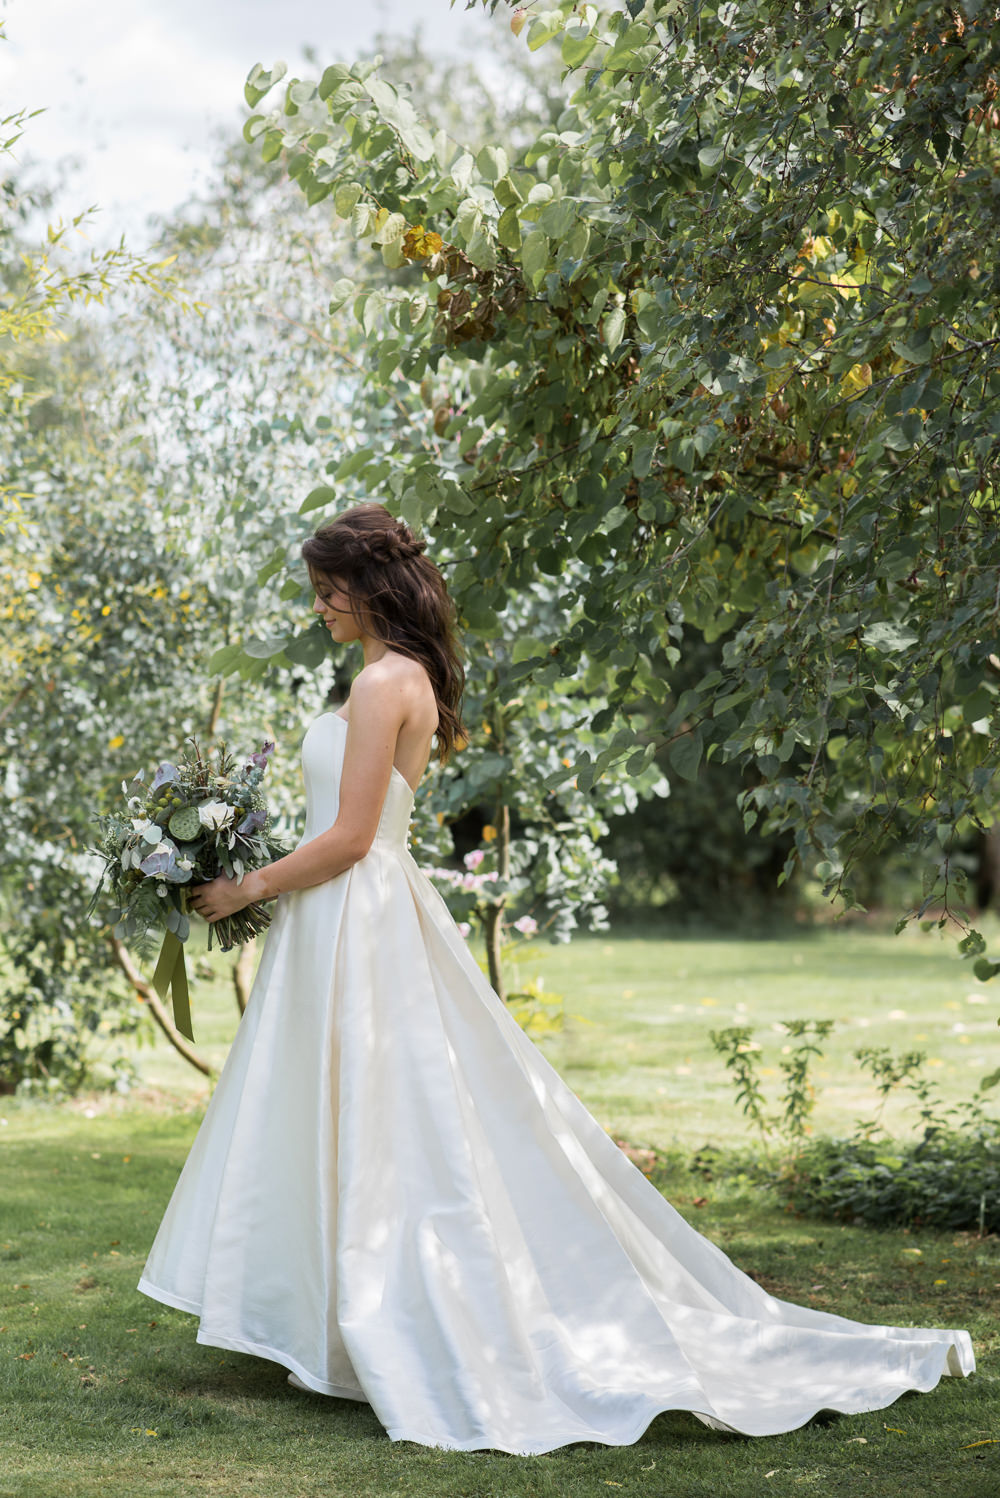 Bride Bridal Dress Gown Strapless Sassi Holford Satin Bodice Train Minimalist Wedding Ideas Nicola Belson Photography